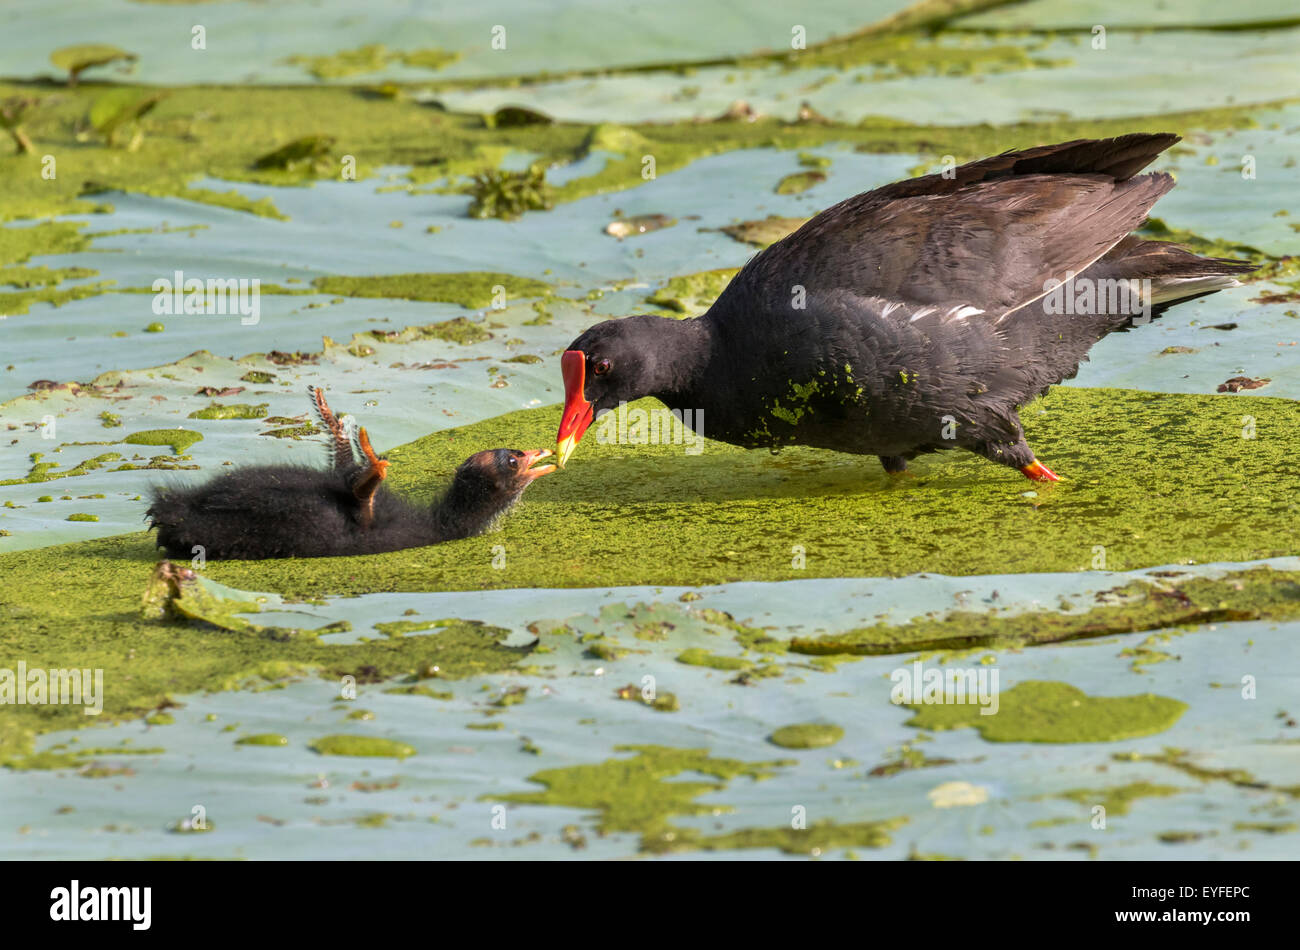 Common Gallinule (Gallinula galeata) feeding a chick, Brazos Bend state park, Needville, Texas, USA. - Stock Image